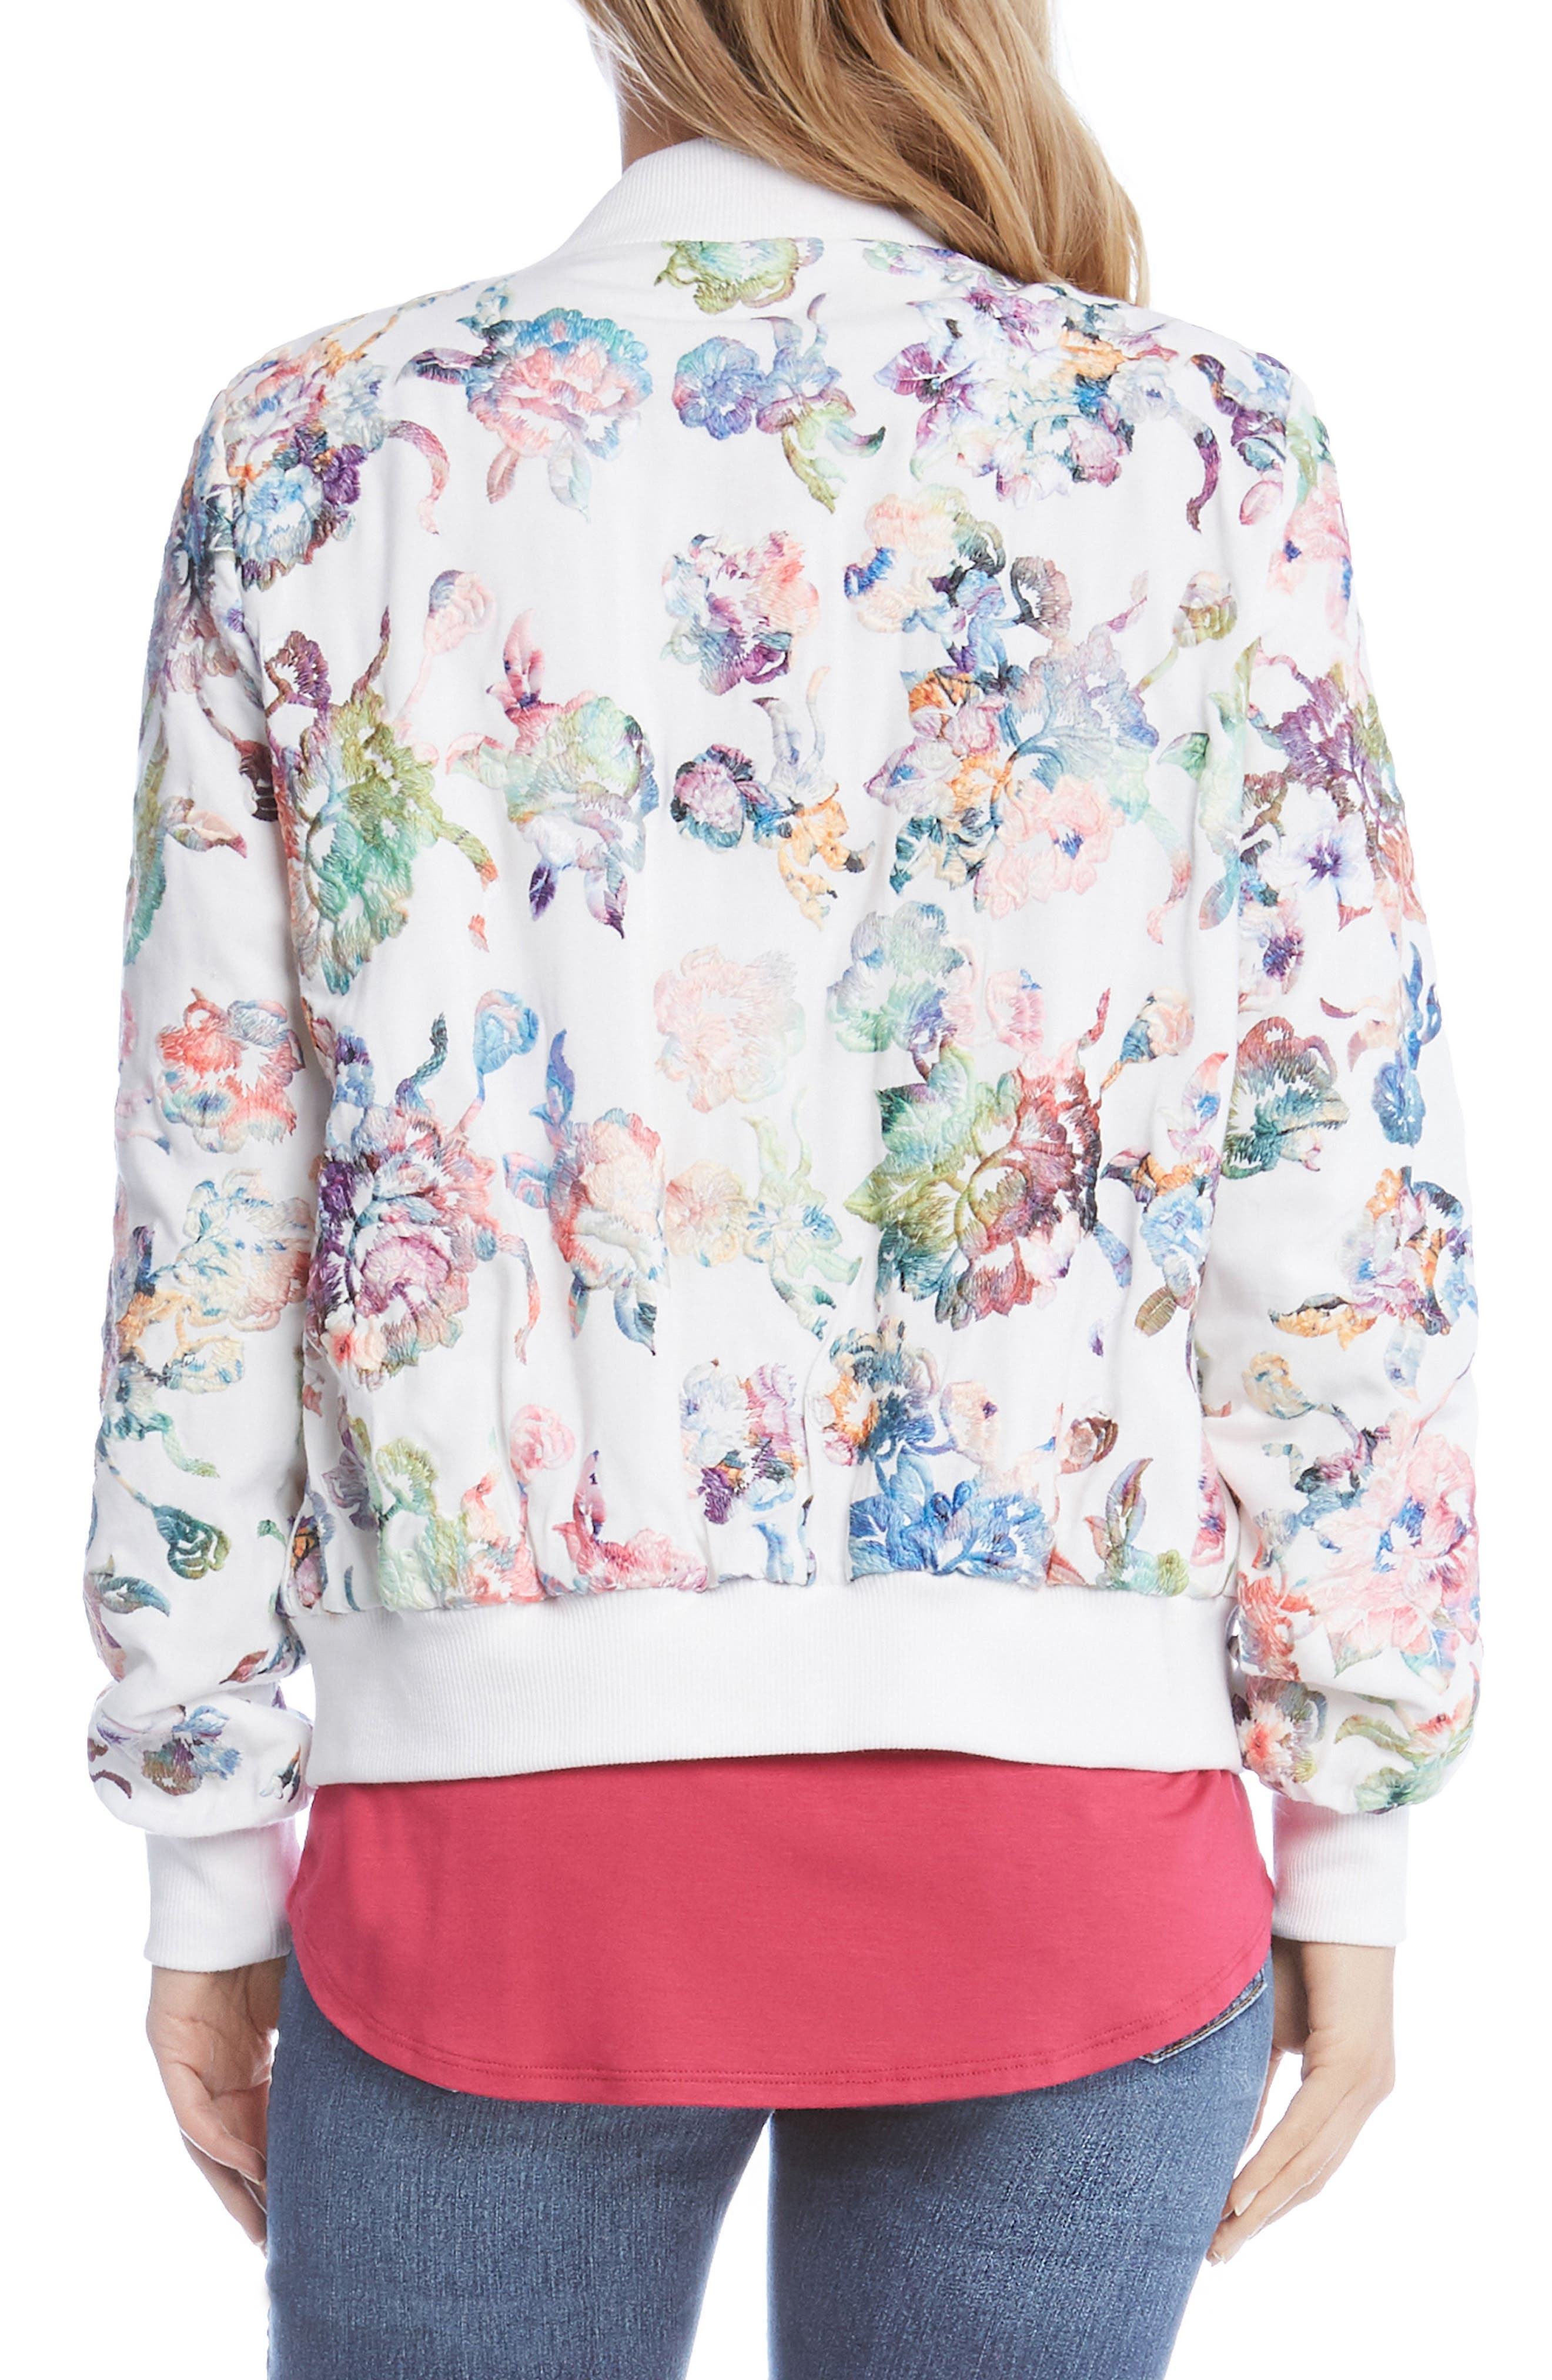 Embroidered Floral Bomber Jacket,                             Alternate thumbnail 3, color,                             Multi-Colored